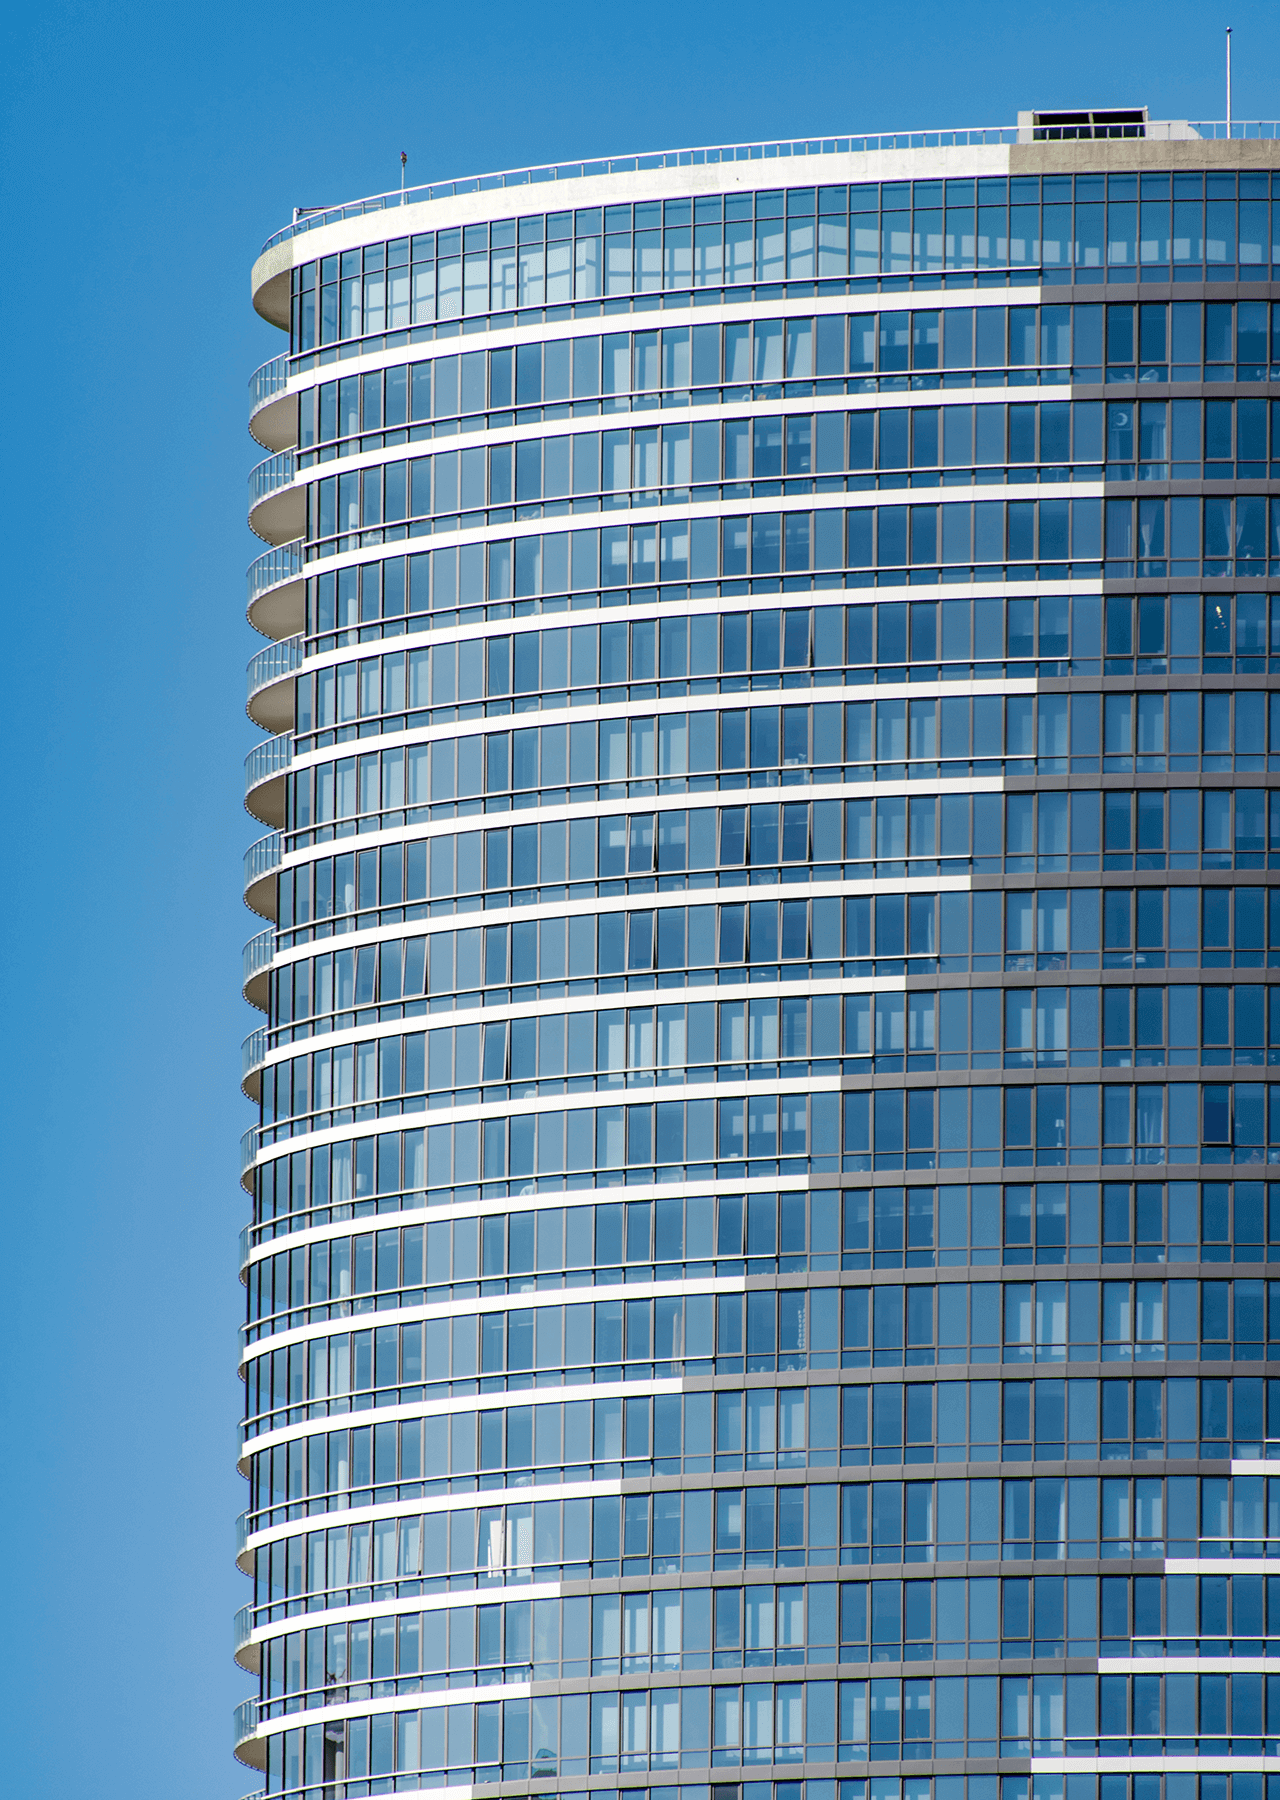 The Elipse Building